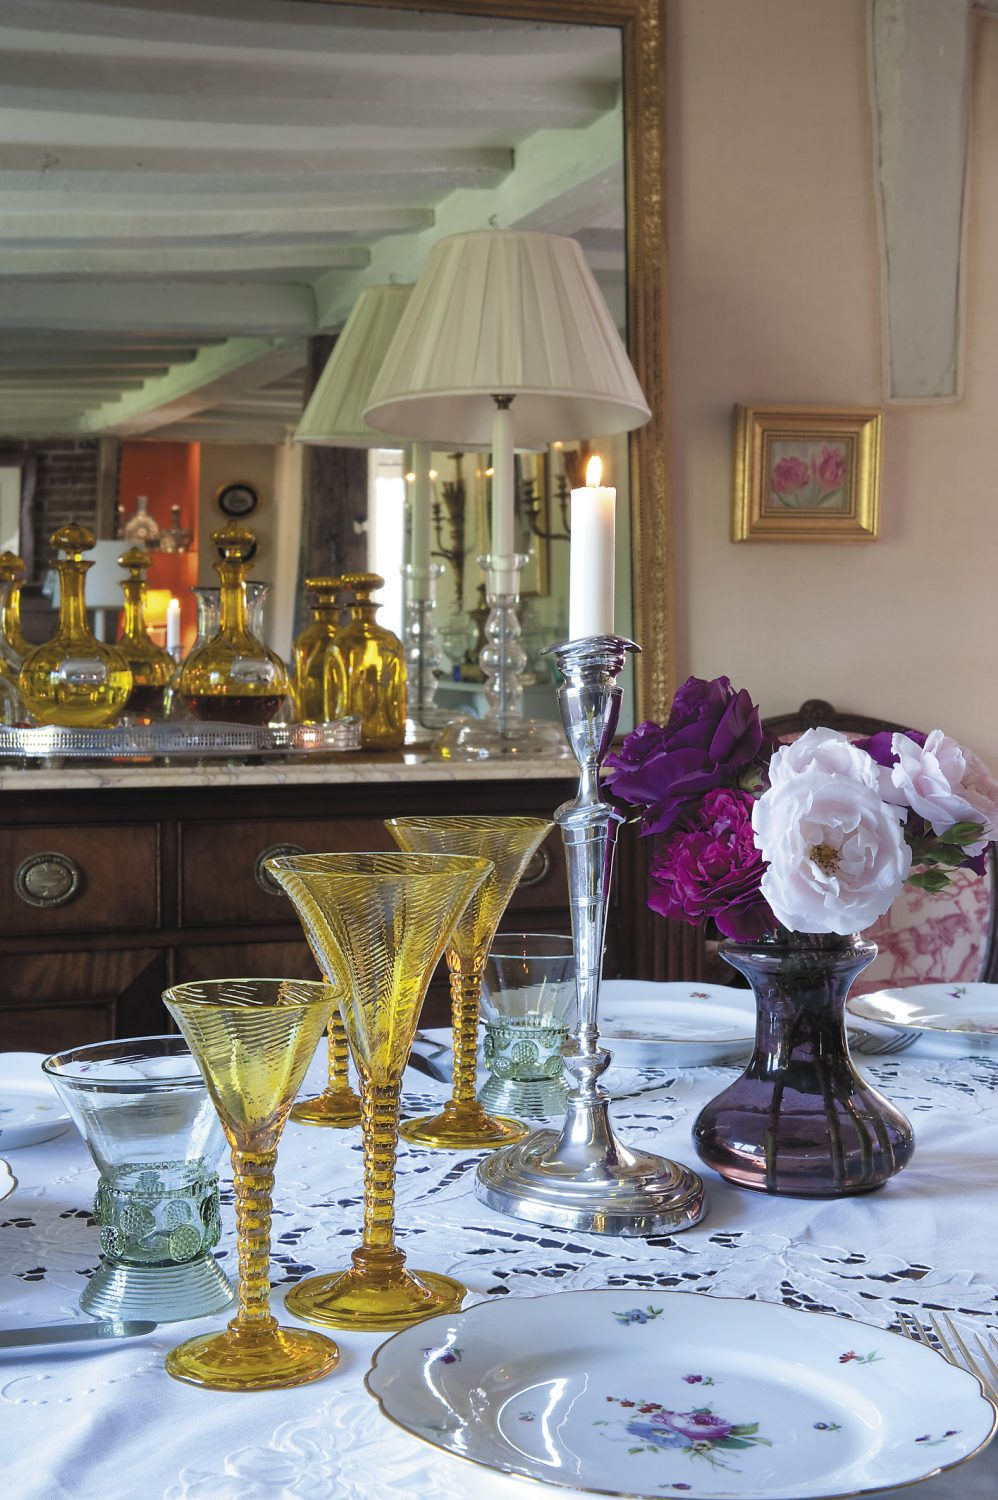 In the dining room an oval table is set with Bohemian amber glass